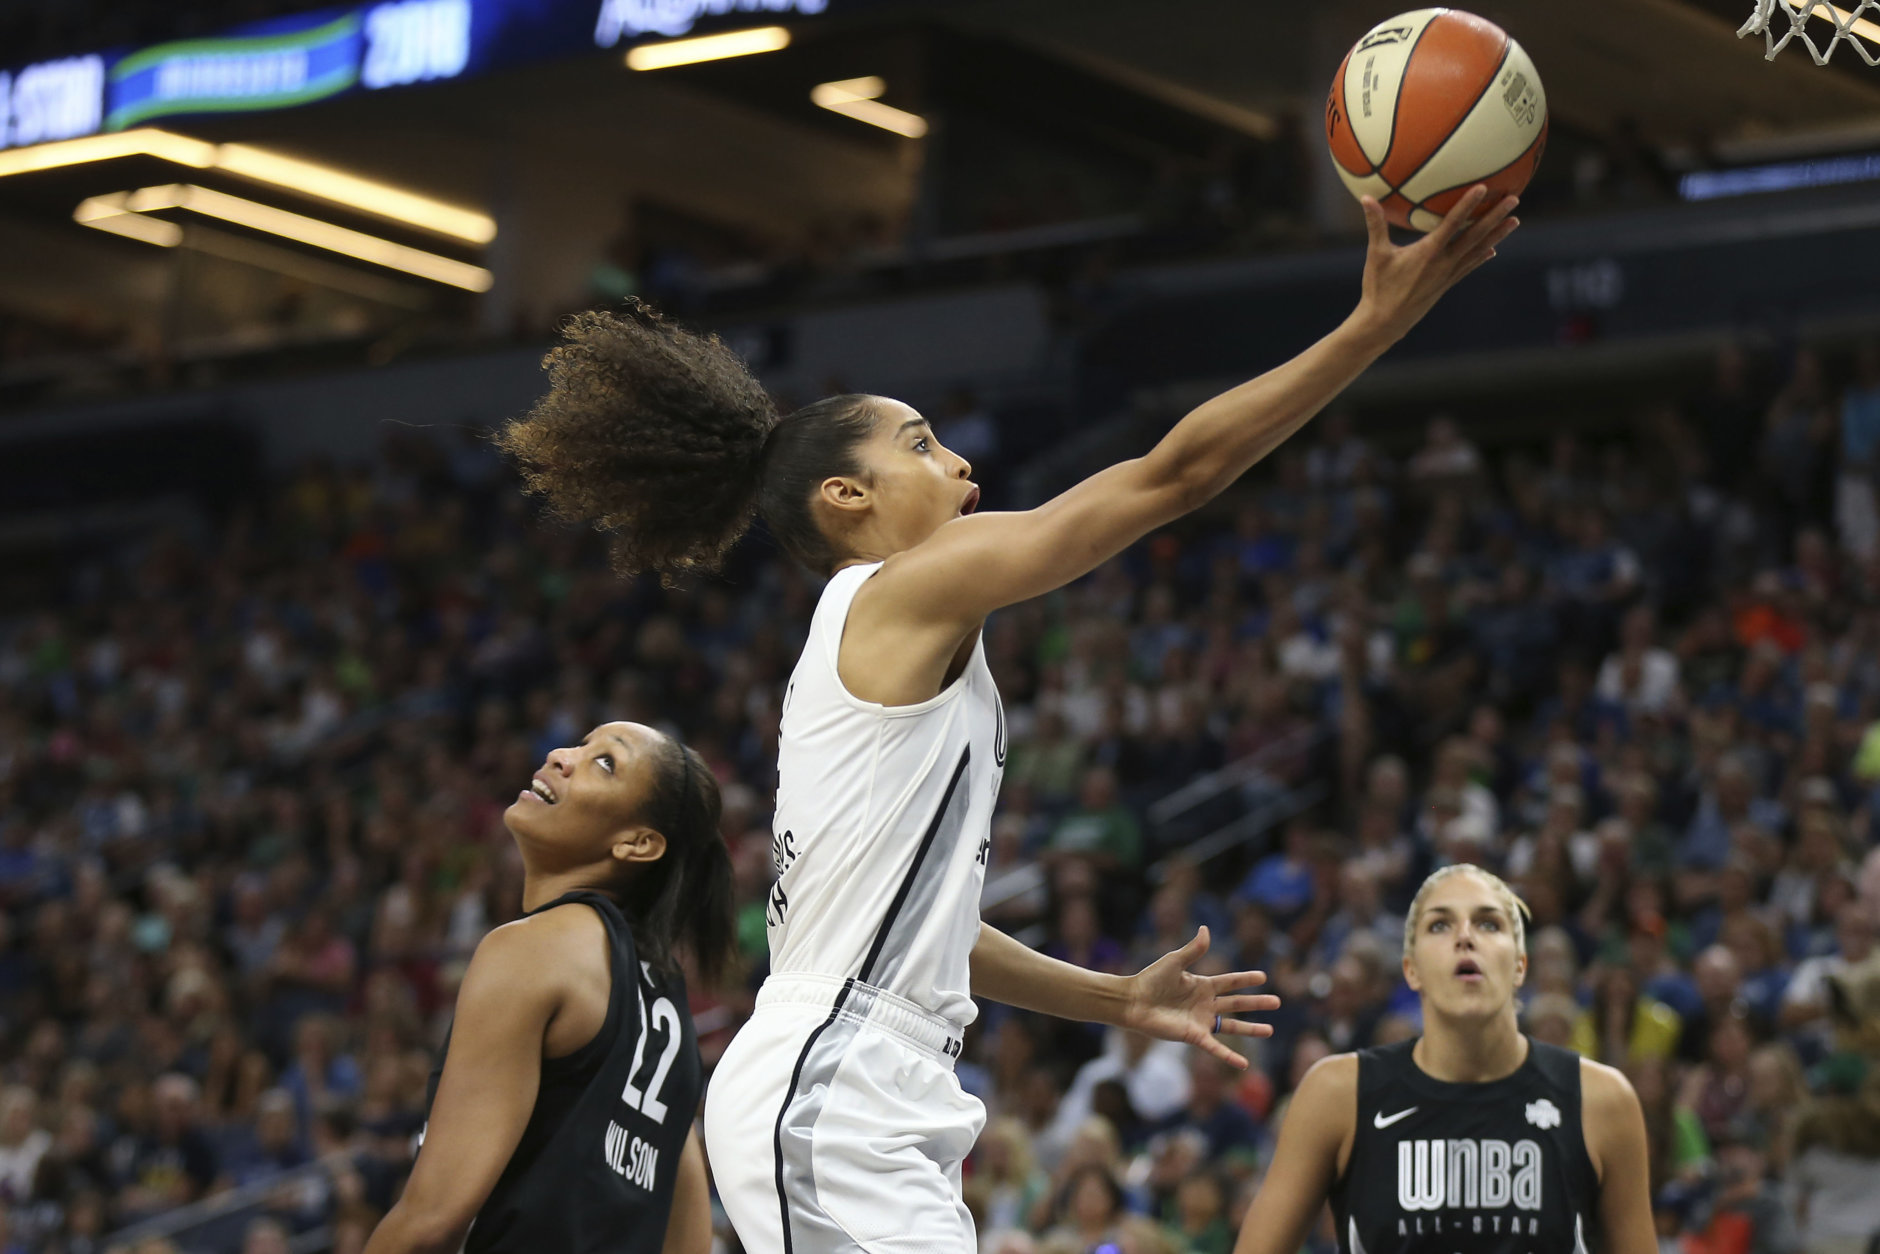 Team Candace Parker's Skylar Diggins-Smith, center, goes to the basket against Team Delle Donne's A'ja Wilson (22) in the first half of the WNBA All-Star basketball game Saturday, July 28, 2018 in Minneapolis. (AP Photo/Stacy Bengs)